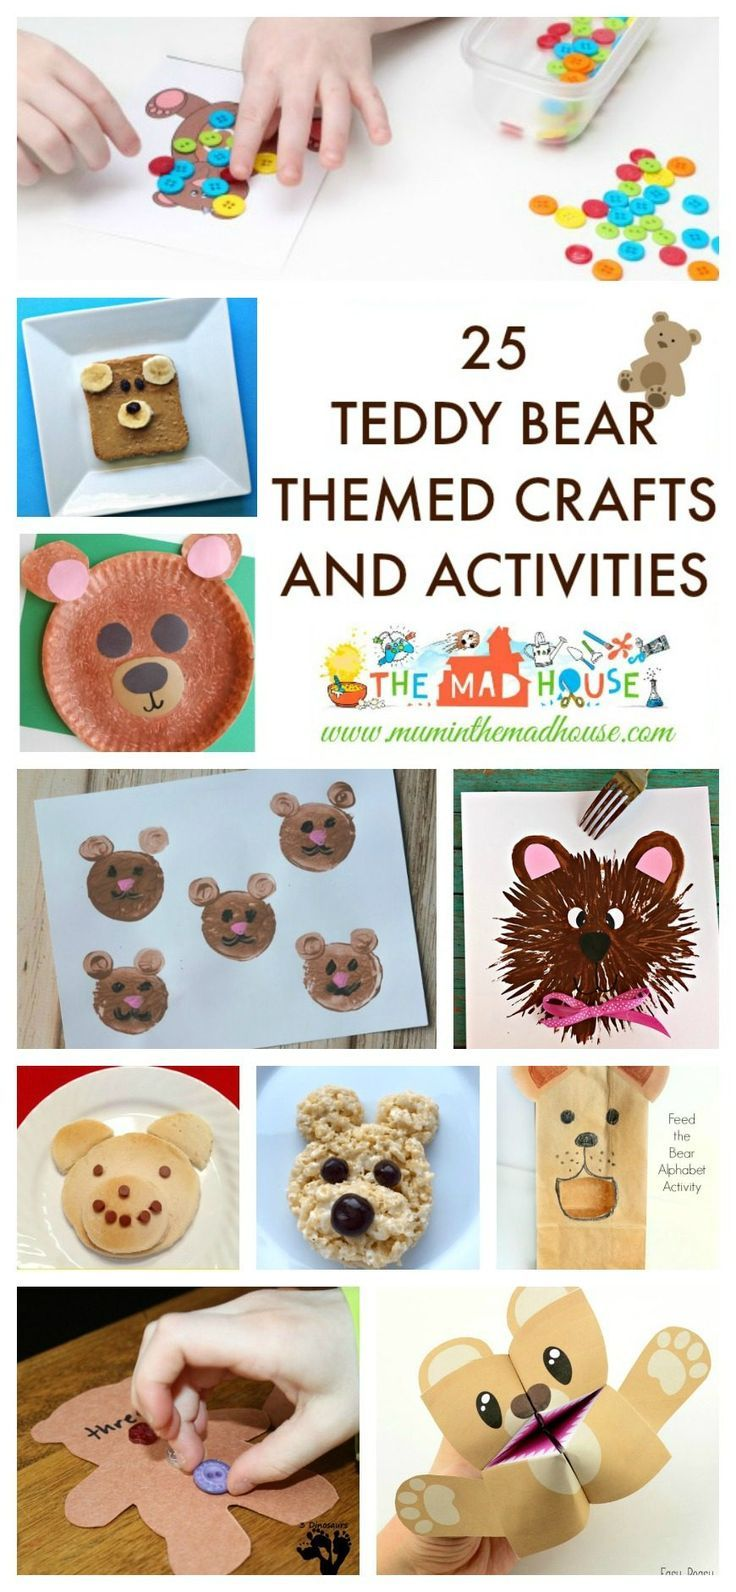 25 Teddy Bear Themed Crafts and Activities - Celebrate National Teddy Bear Day,  Celebrate National Teddy Bear Day with this roundup of teddy bear activities, crafts and foods ideas to suit toddlers, preschoolers and school aged kids